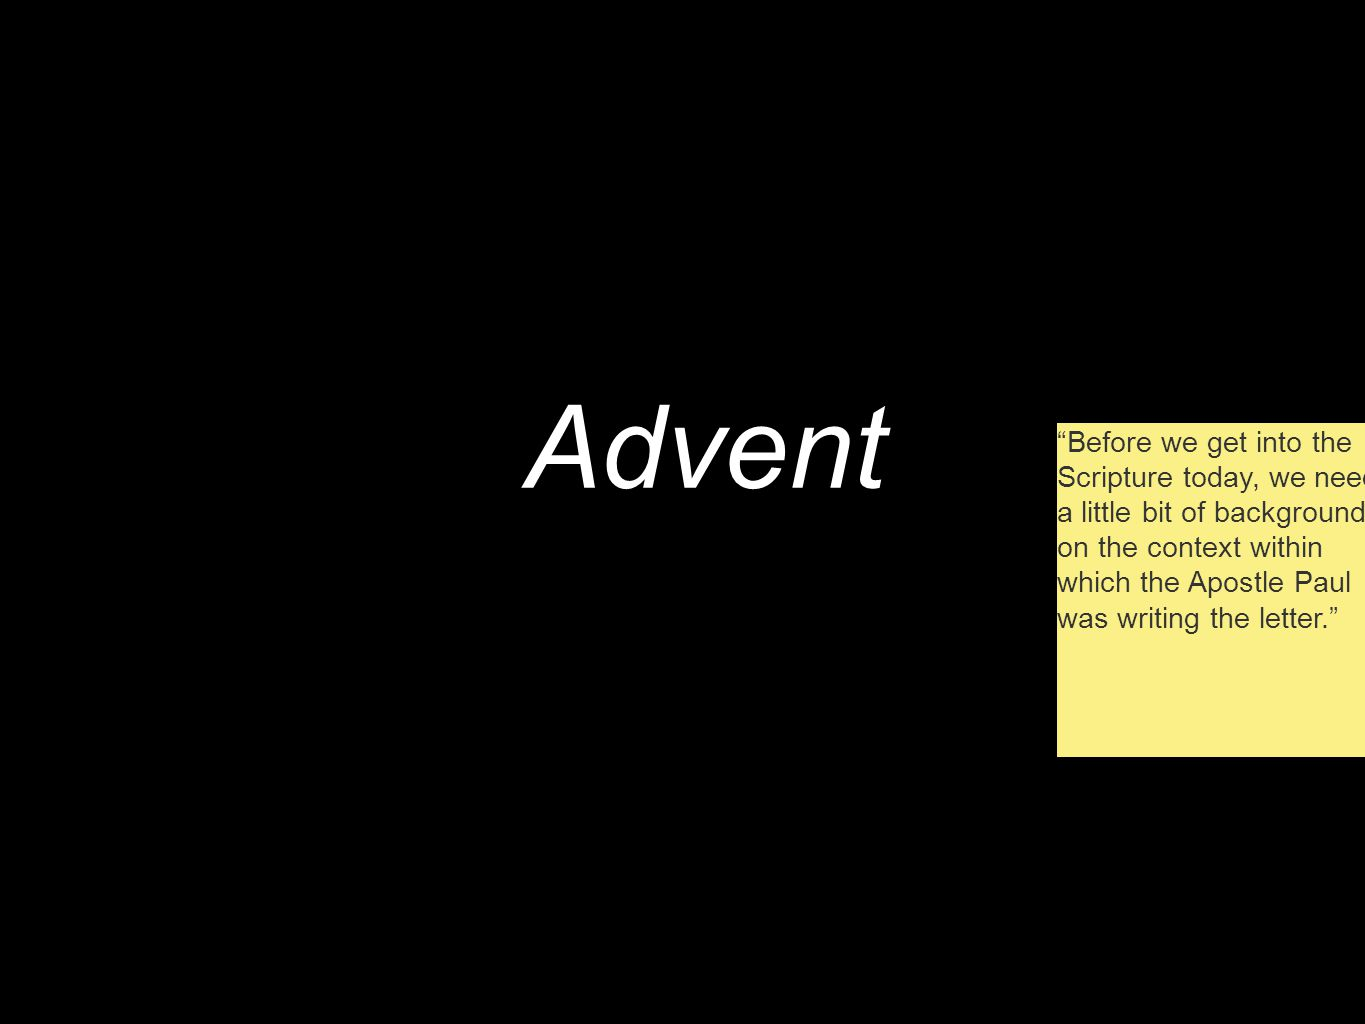 Advent Before we get into the Scripture today, we need a little bit of background on the context within which the Apostle Paul was writing the letter.